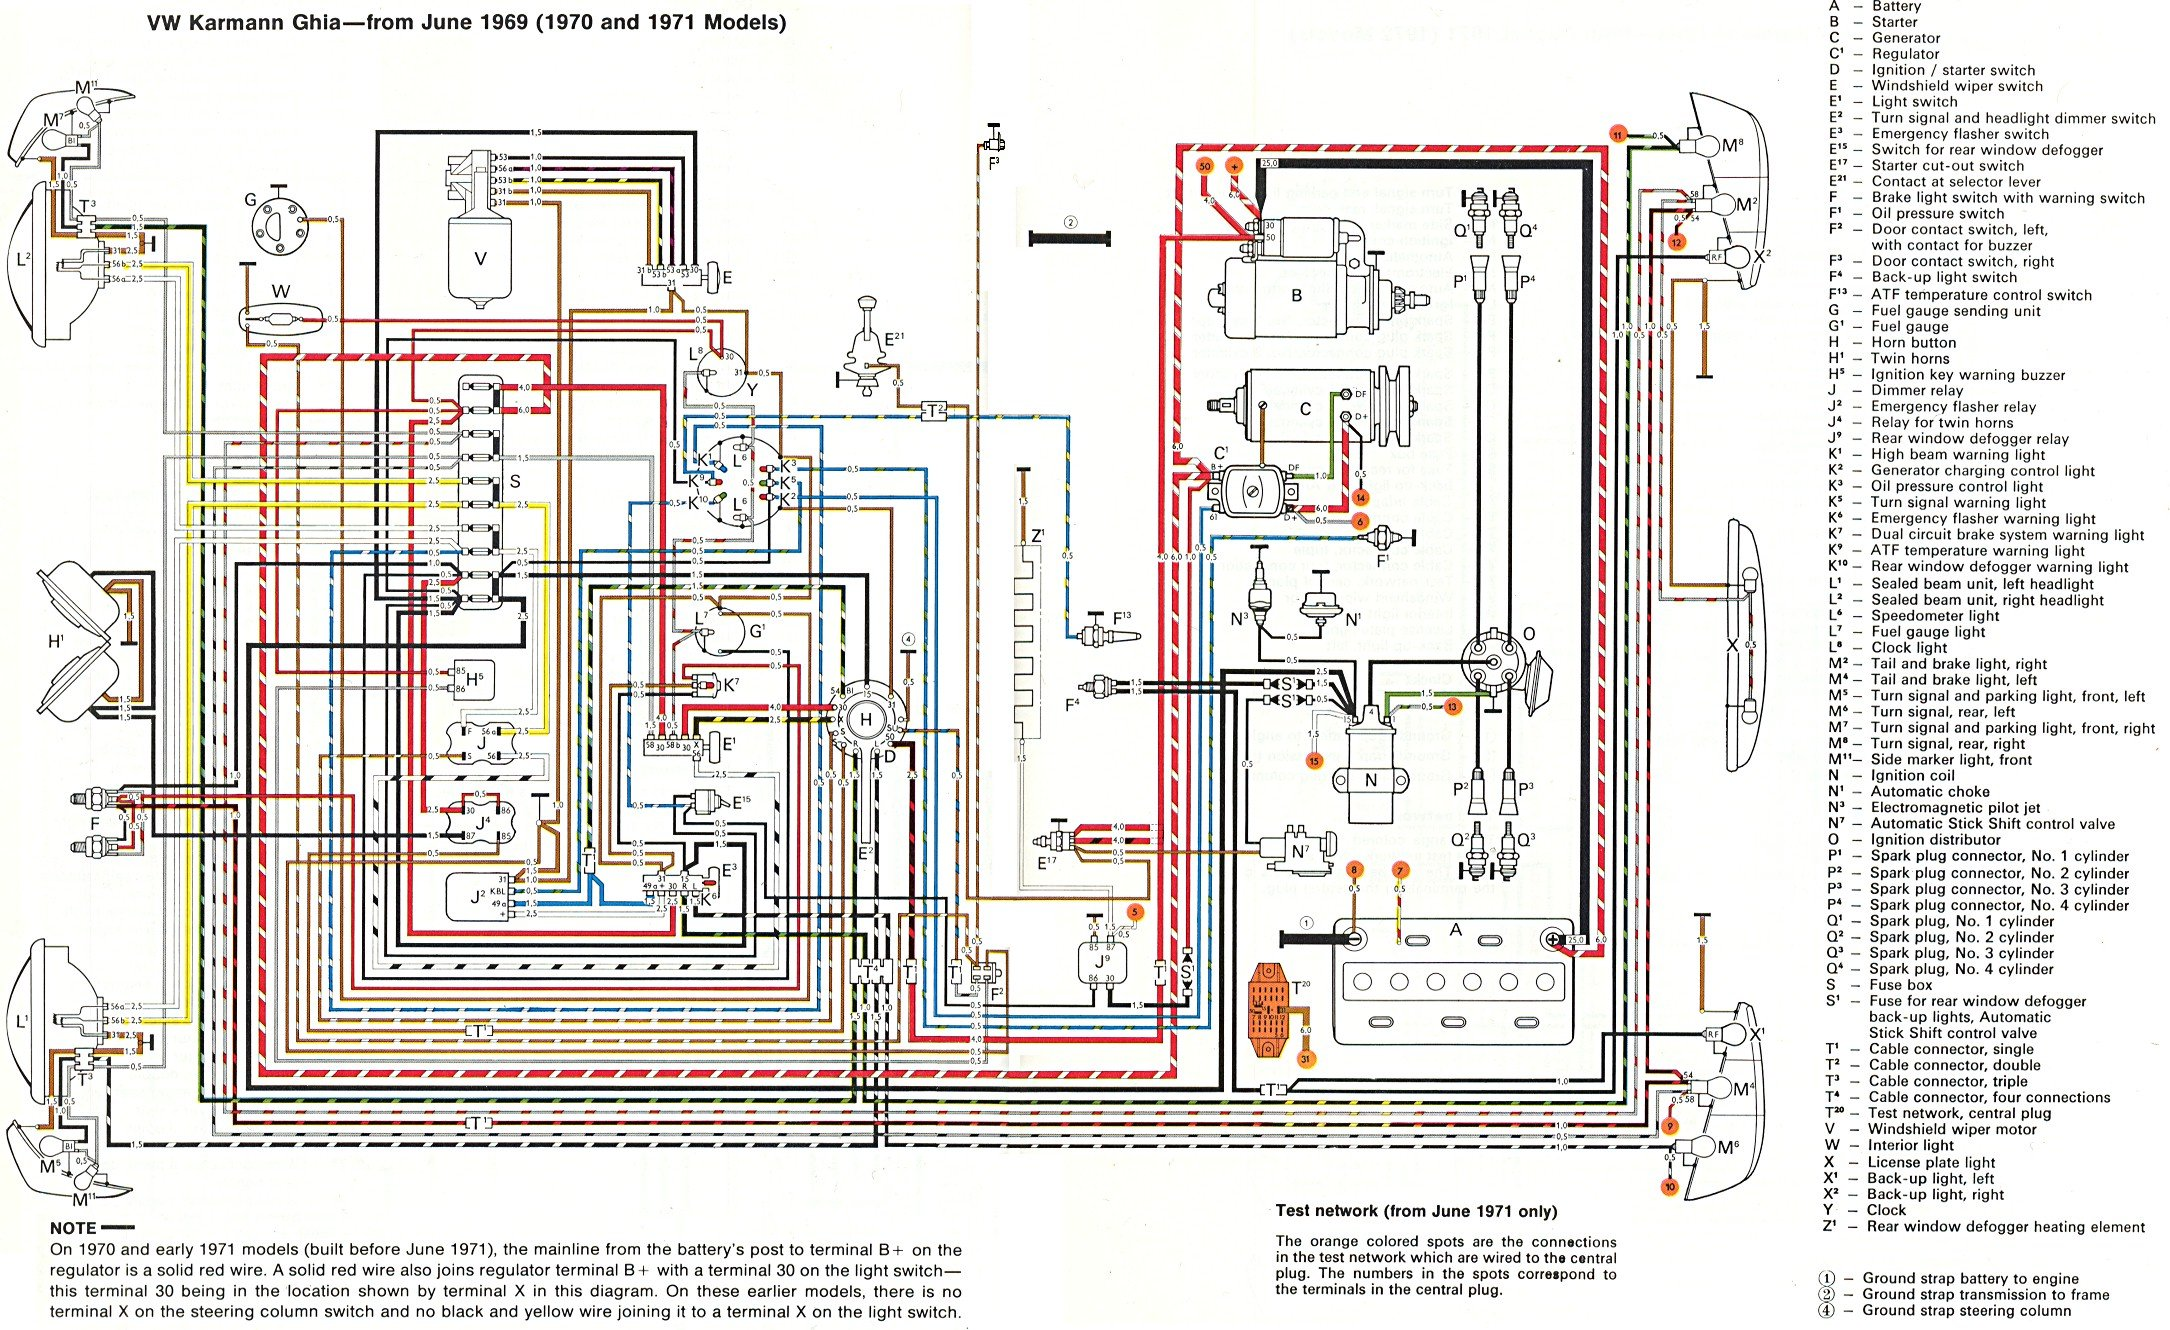 eton viper 70 atv wiring diagram 70 vw wiring diagram thesamba.com :: ghia - view topic - fuel gauge wiring ... #8